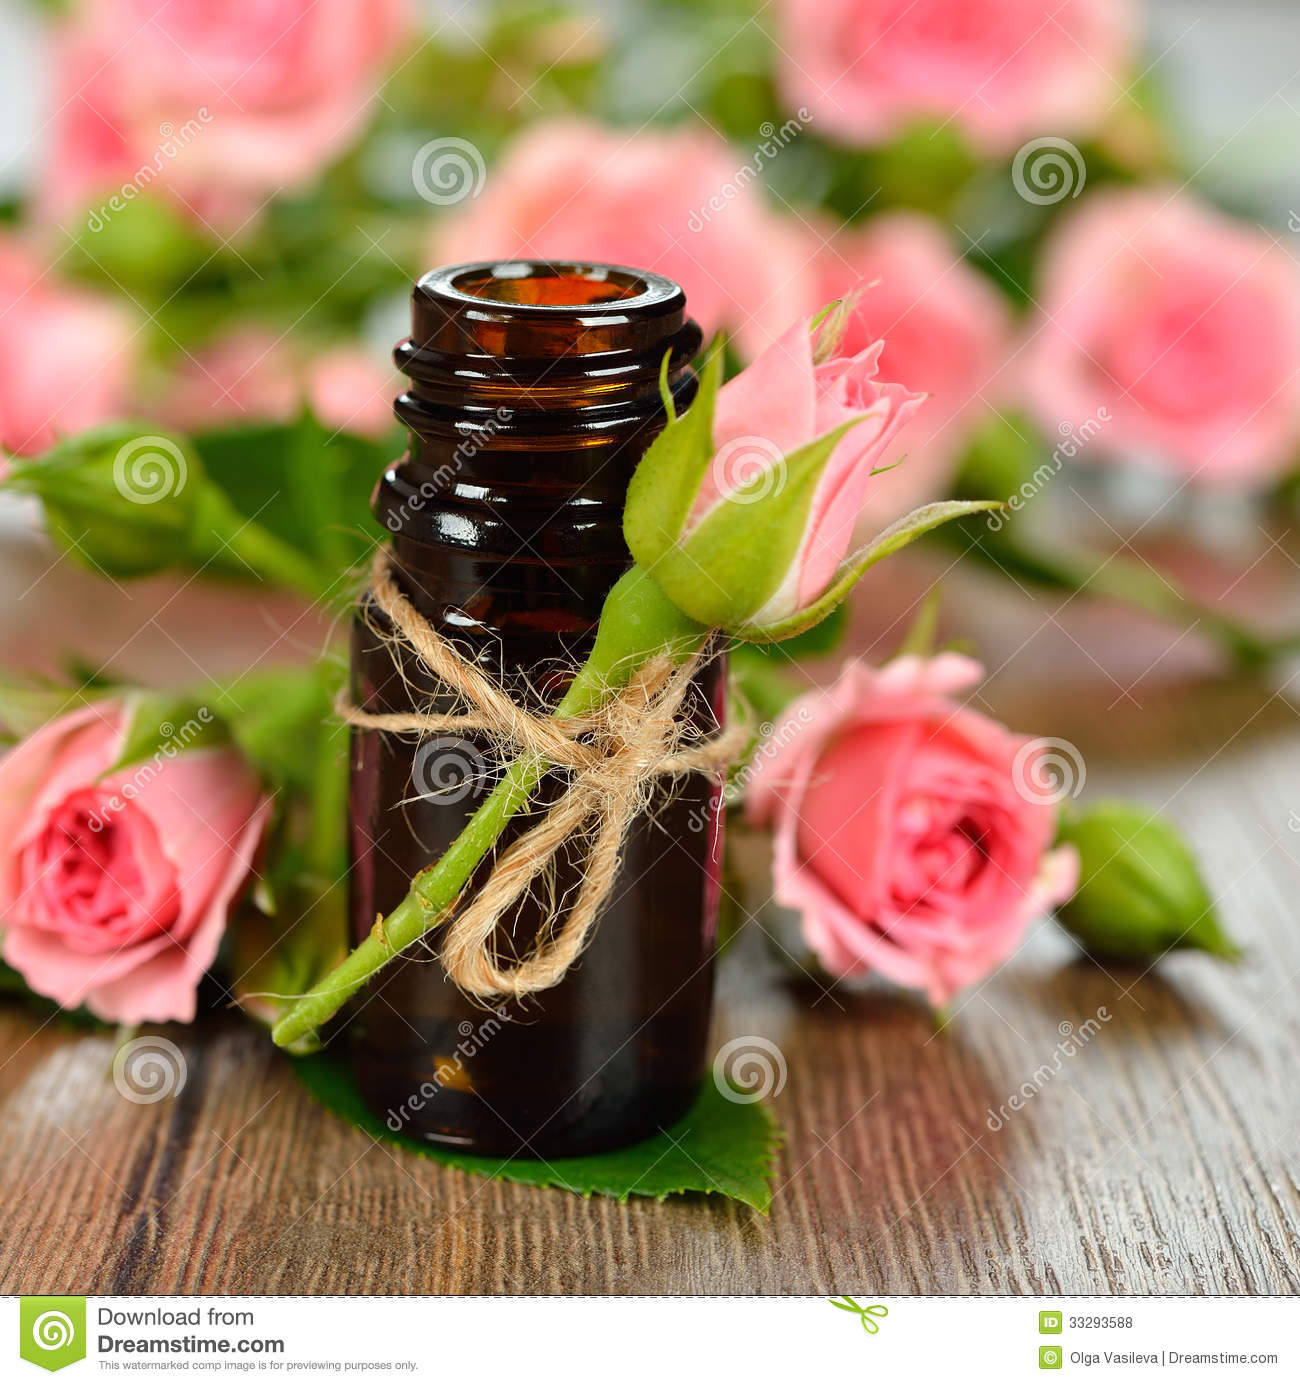 Rose essential oil royalty free stock photos image 33293588 - Rose essential oil business ...